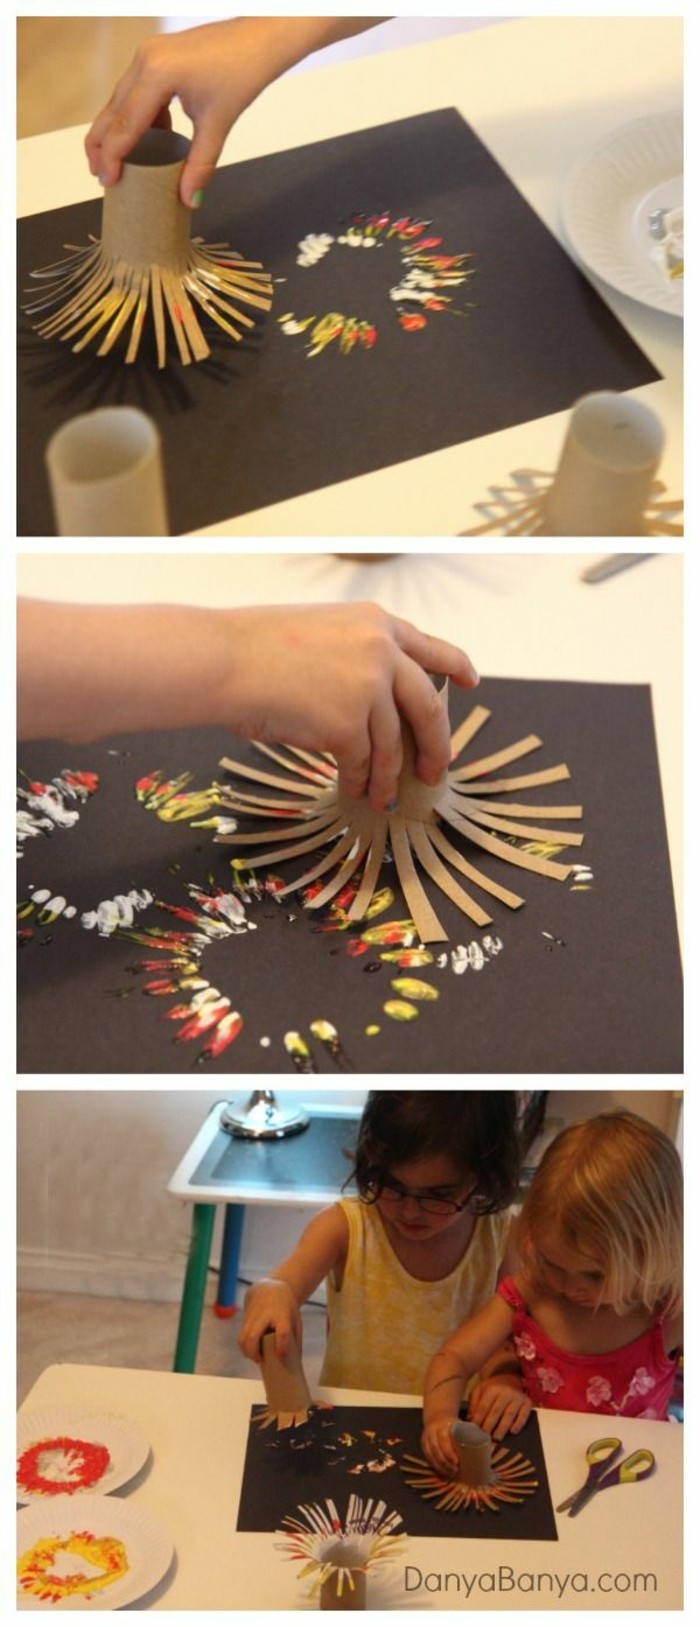 making autumn with children make autumn decoration yourself making with tiling paper rolls stamp yourself